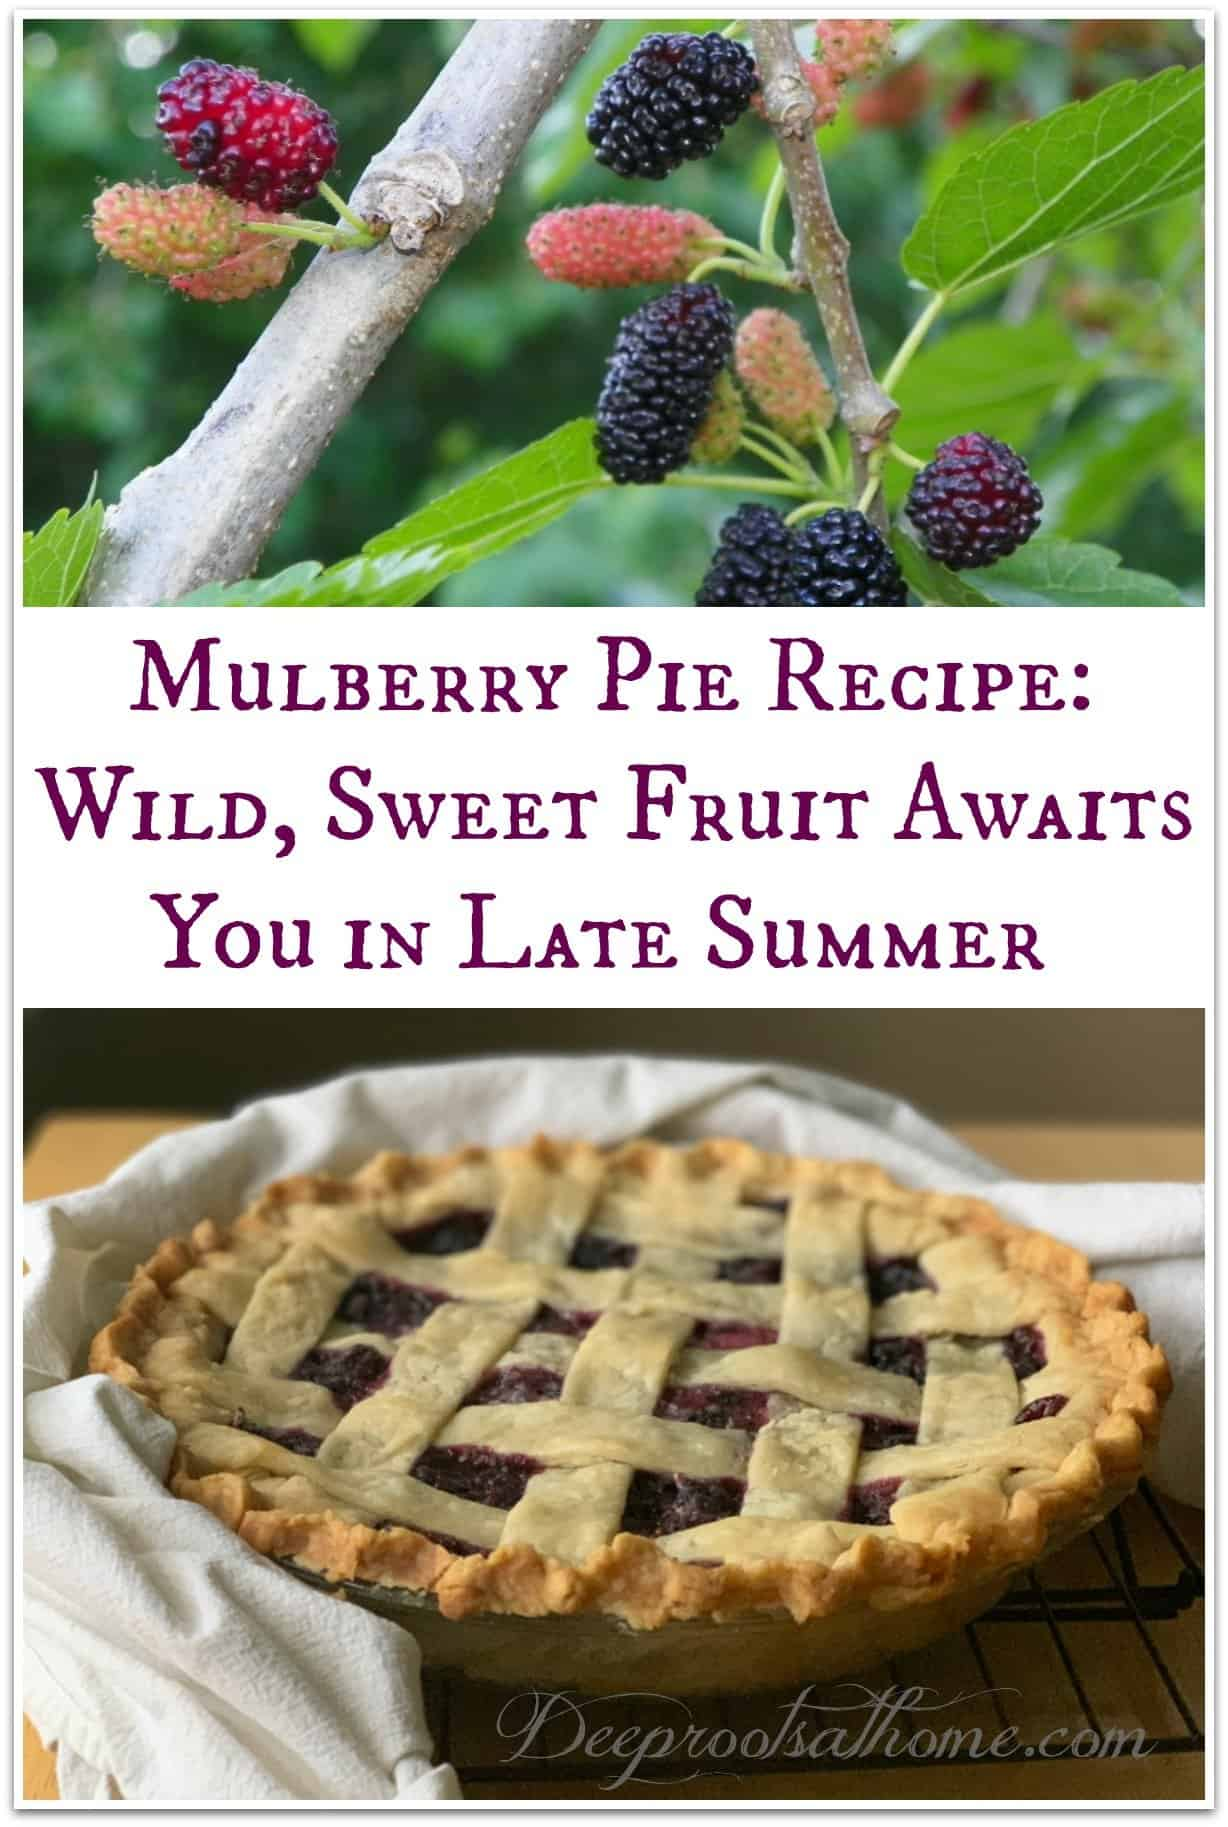 Mulberry Pie Recipe: Wild Sweet Fruit Awaits You in Mid-Late Summer